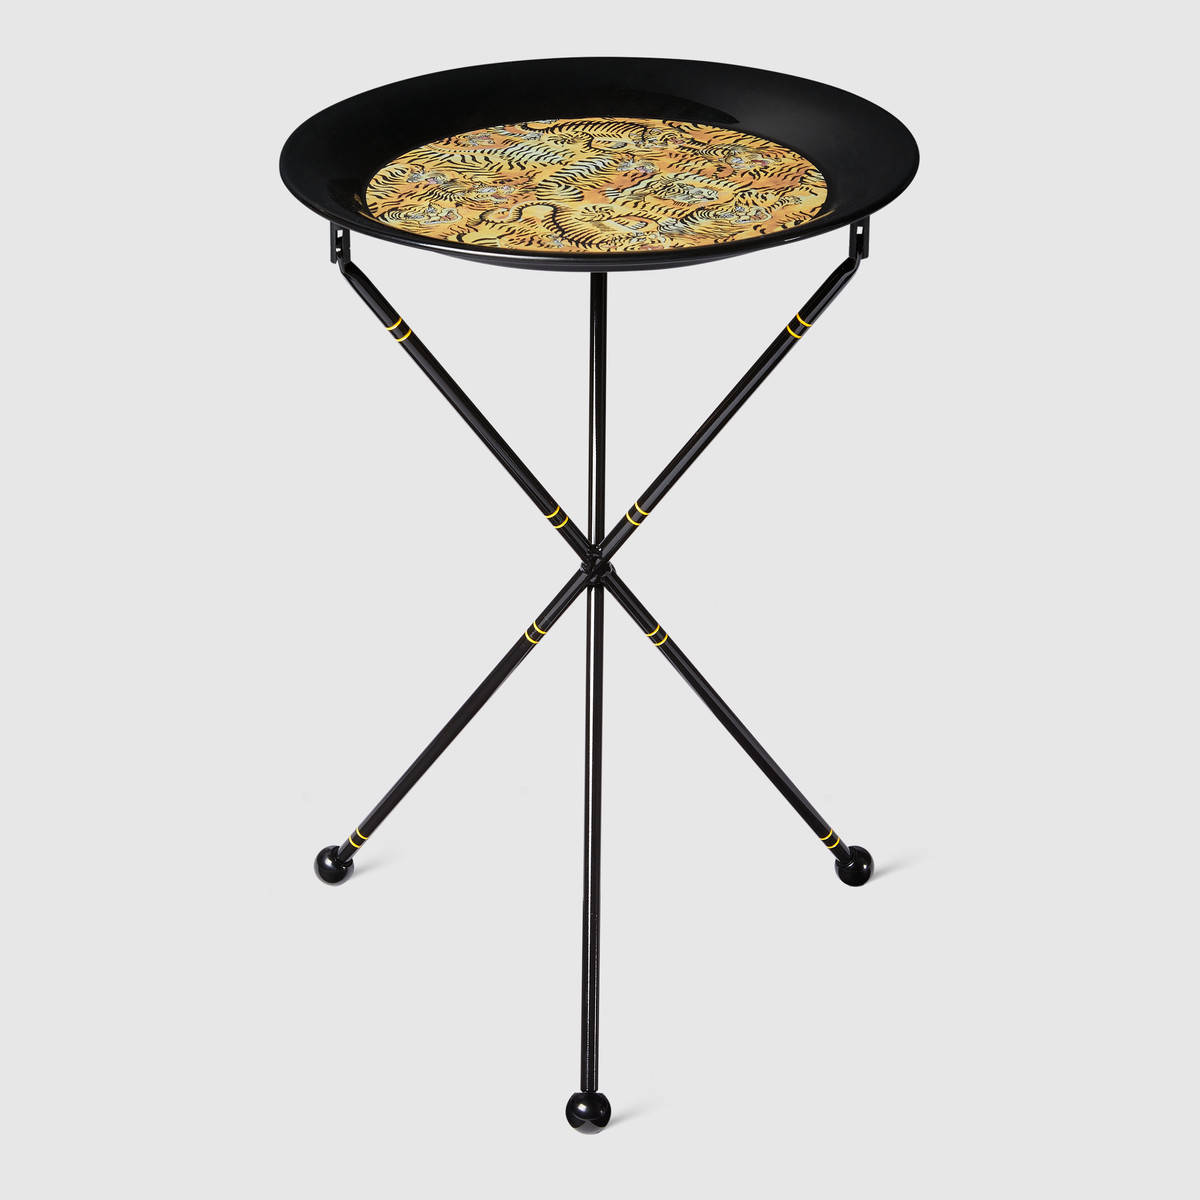 Gucci Decor Tigers-print-metal-folding-table